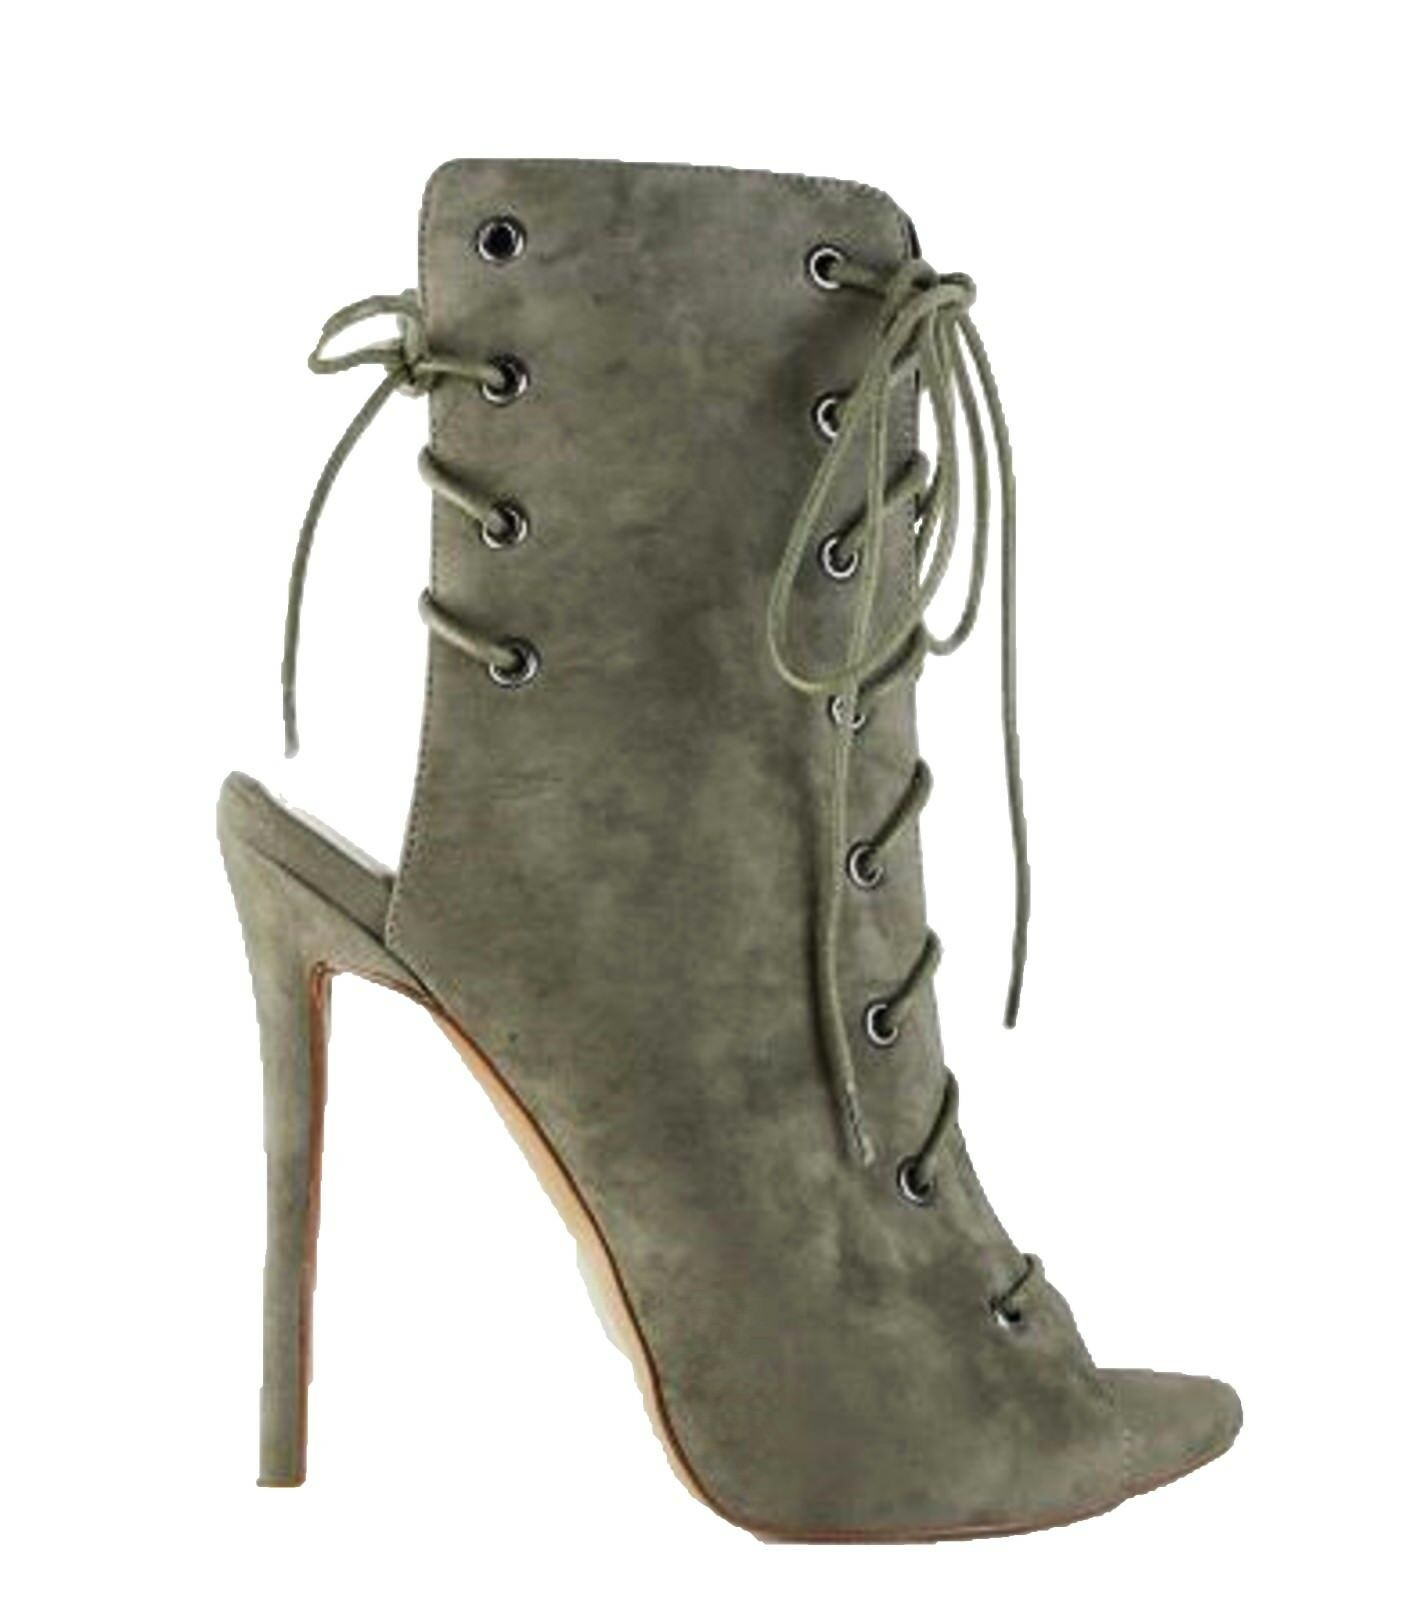 Damenschuhe Ankle Stiefel Peep Toe Suede Elegant Lace up Booties Khaki Olive Army Green